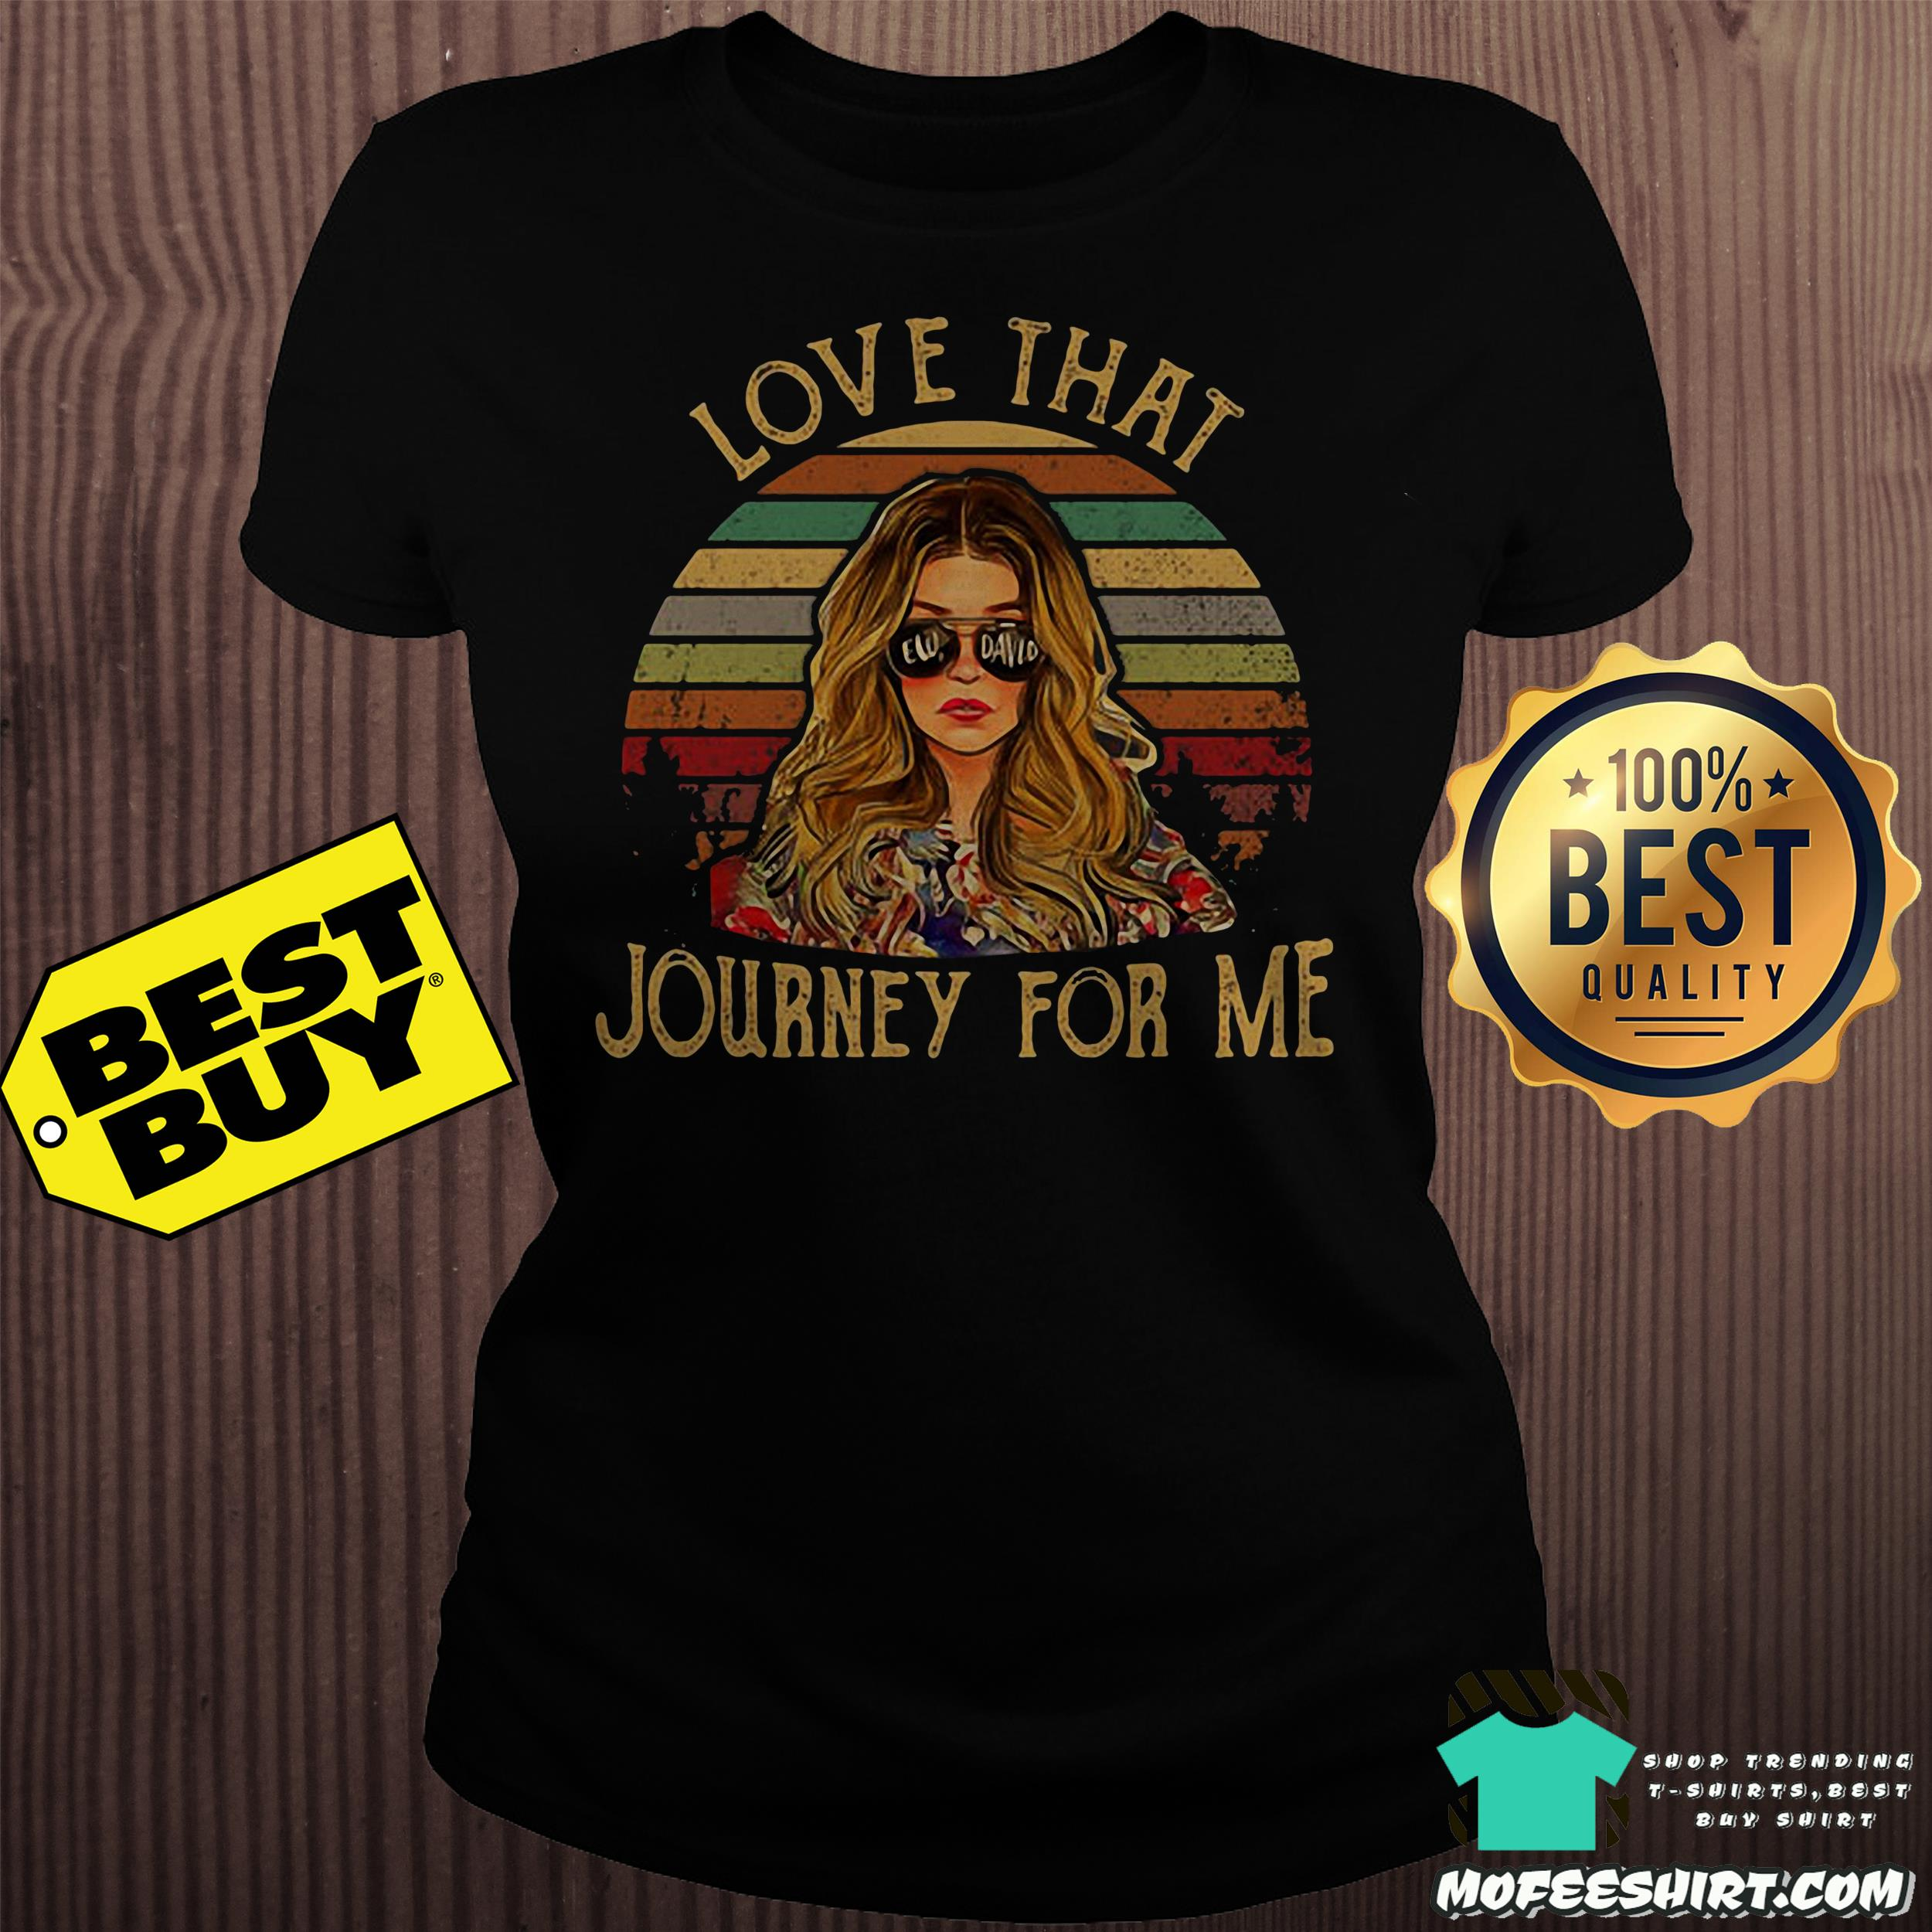 3 1 - Ew David love that Journey for me vintage shirt